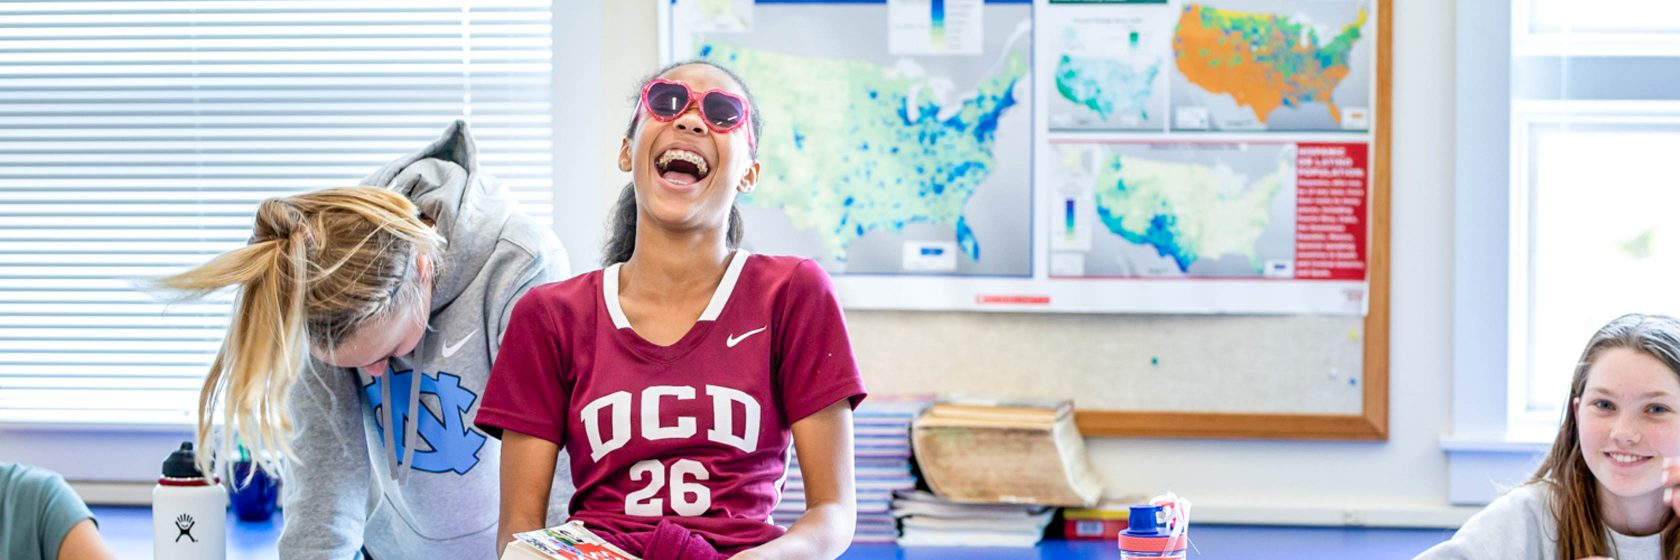 Students smiling and laughing in a classroom.